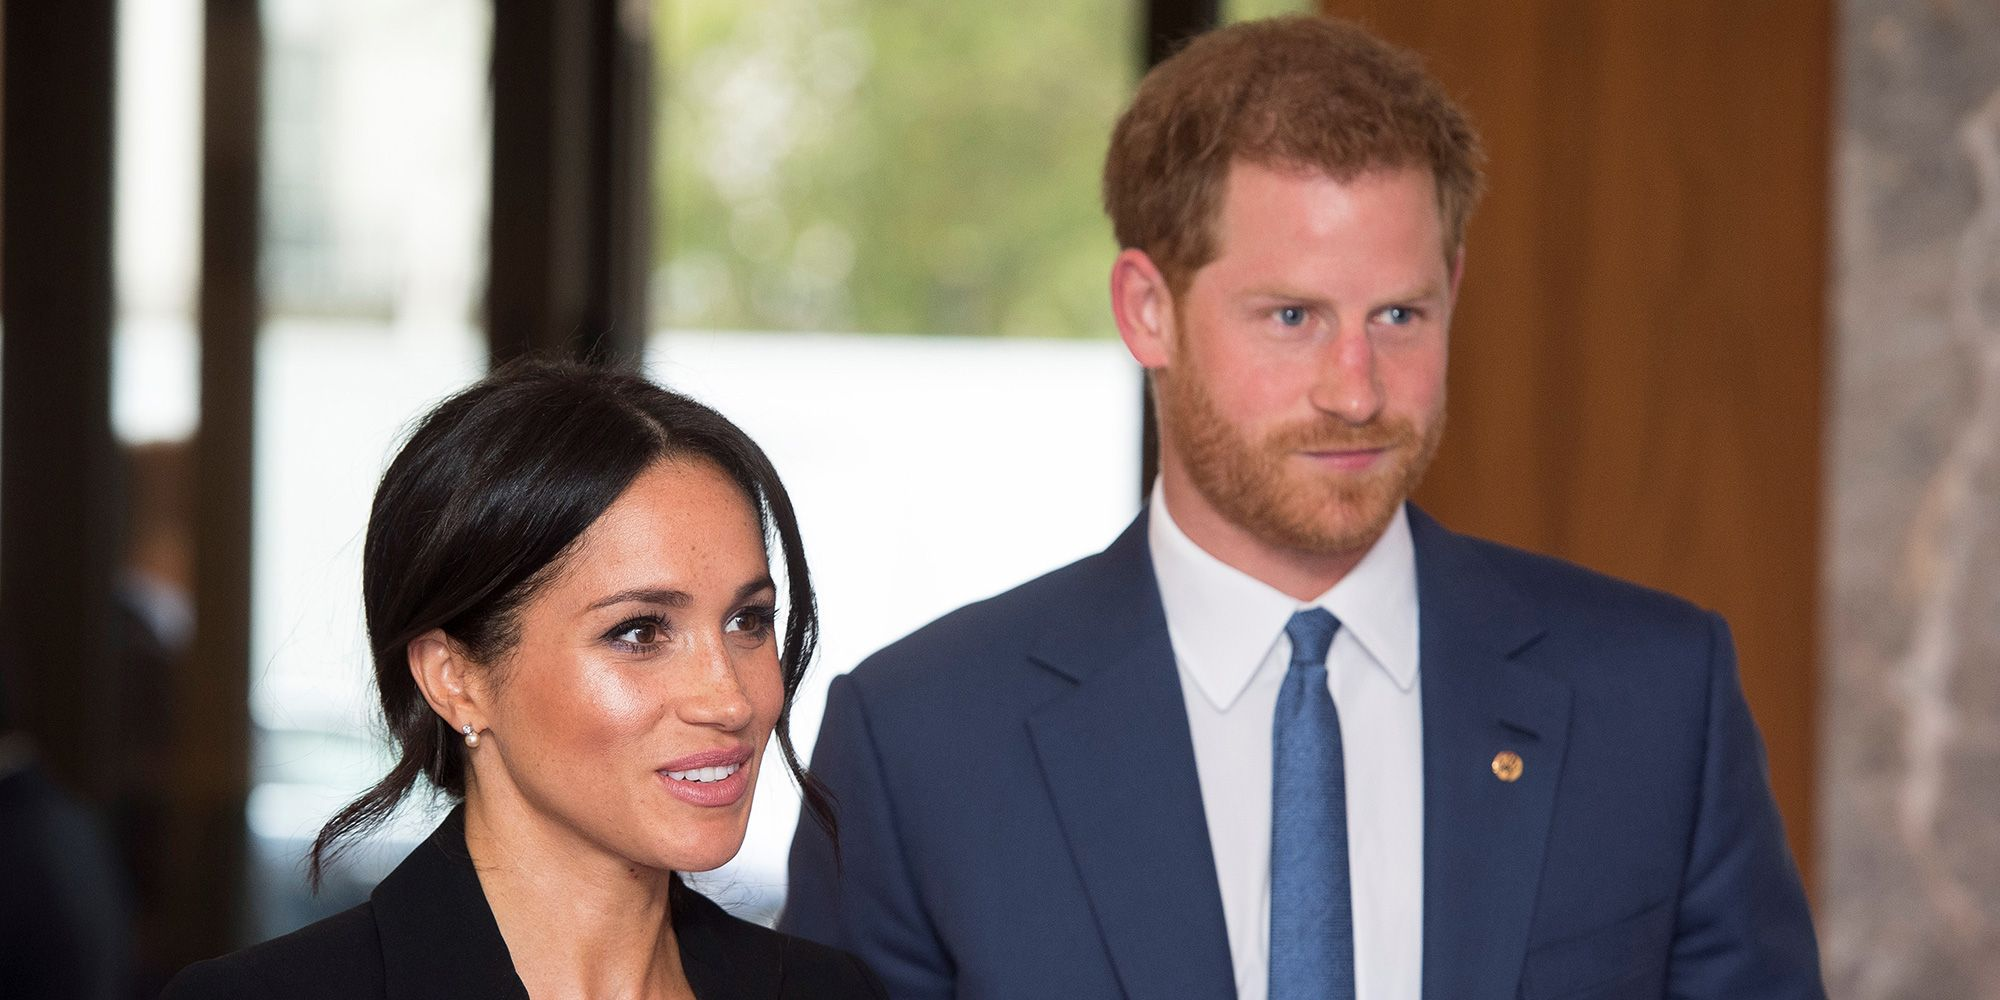 Meghan Markle and Prince Harry just shared the one thing they don't like about being royal